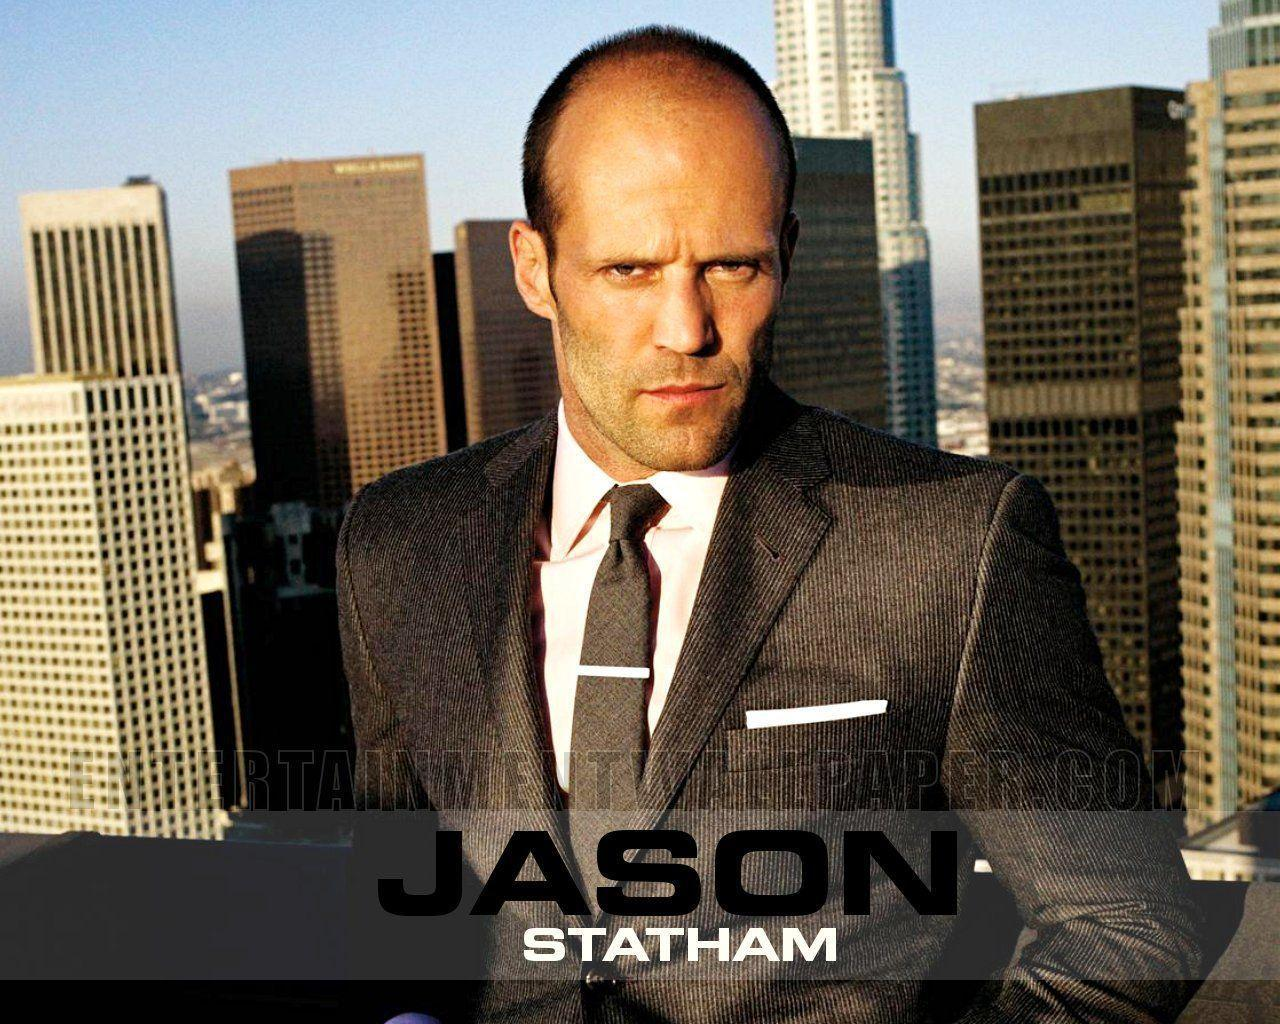 Jason Statham Hd Wallpaper | Ophil.